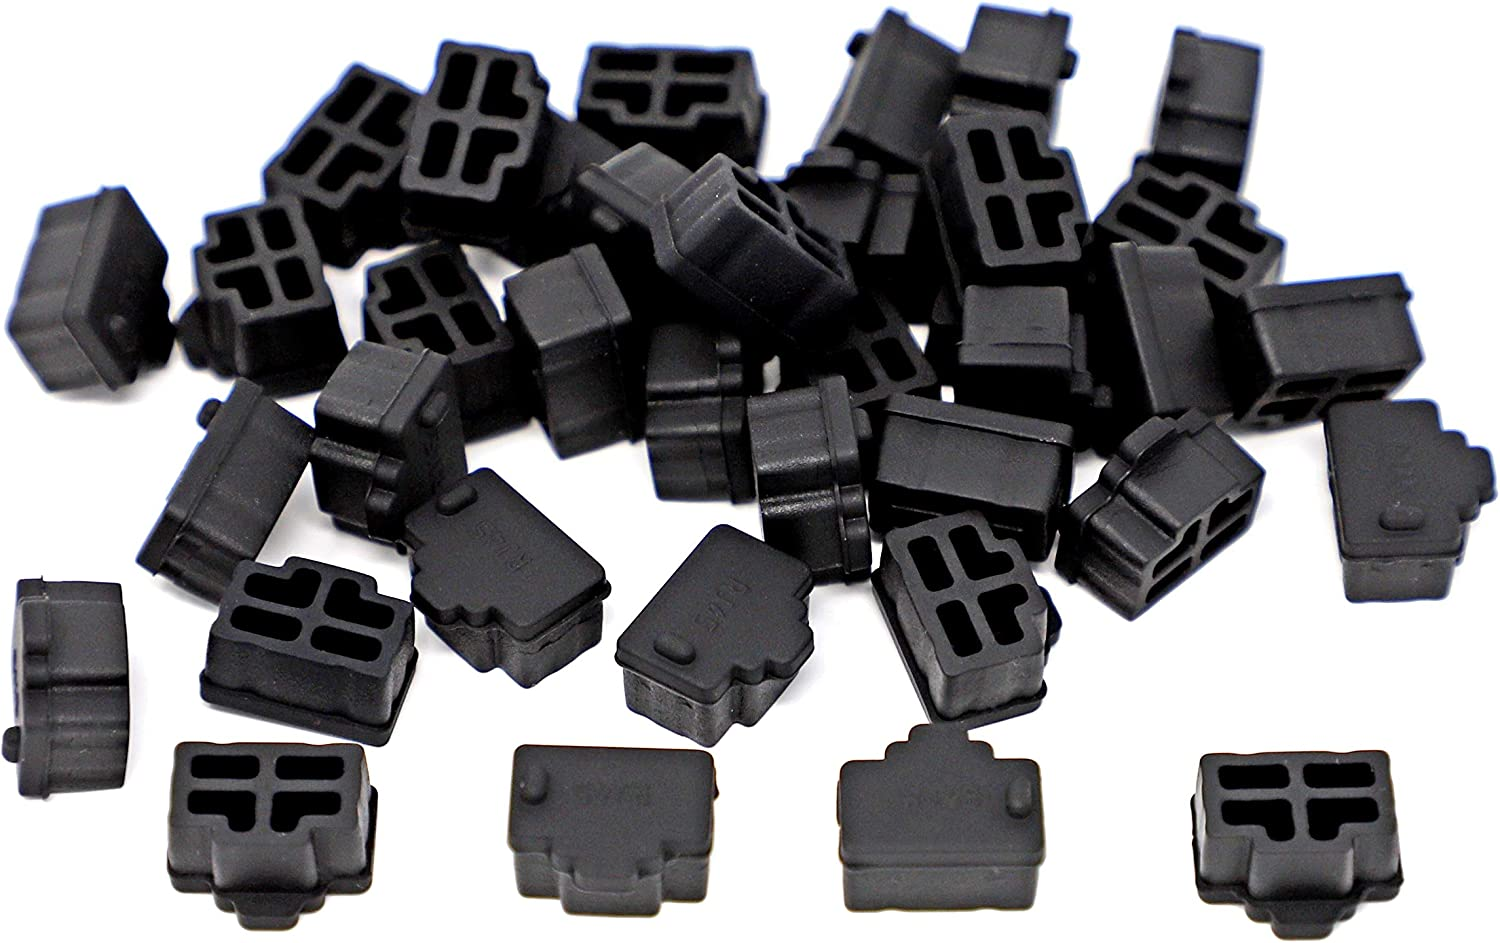 100 Pcs Black Ethernet Hub Port RJ45 Anti Dust Cover Cap Protector Plug